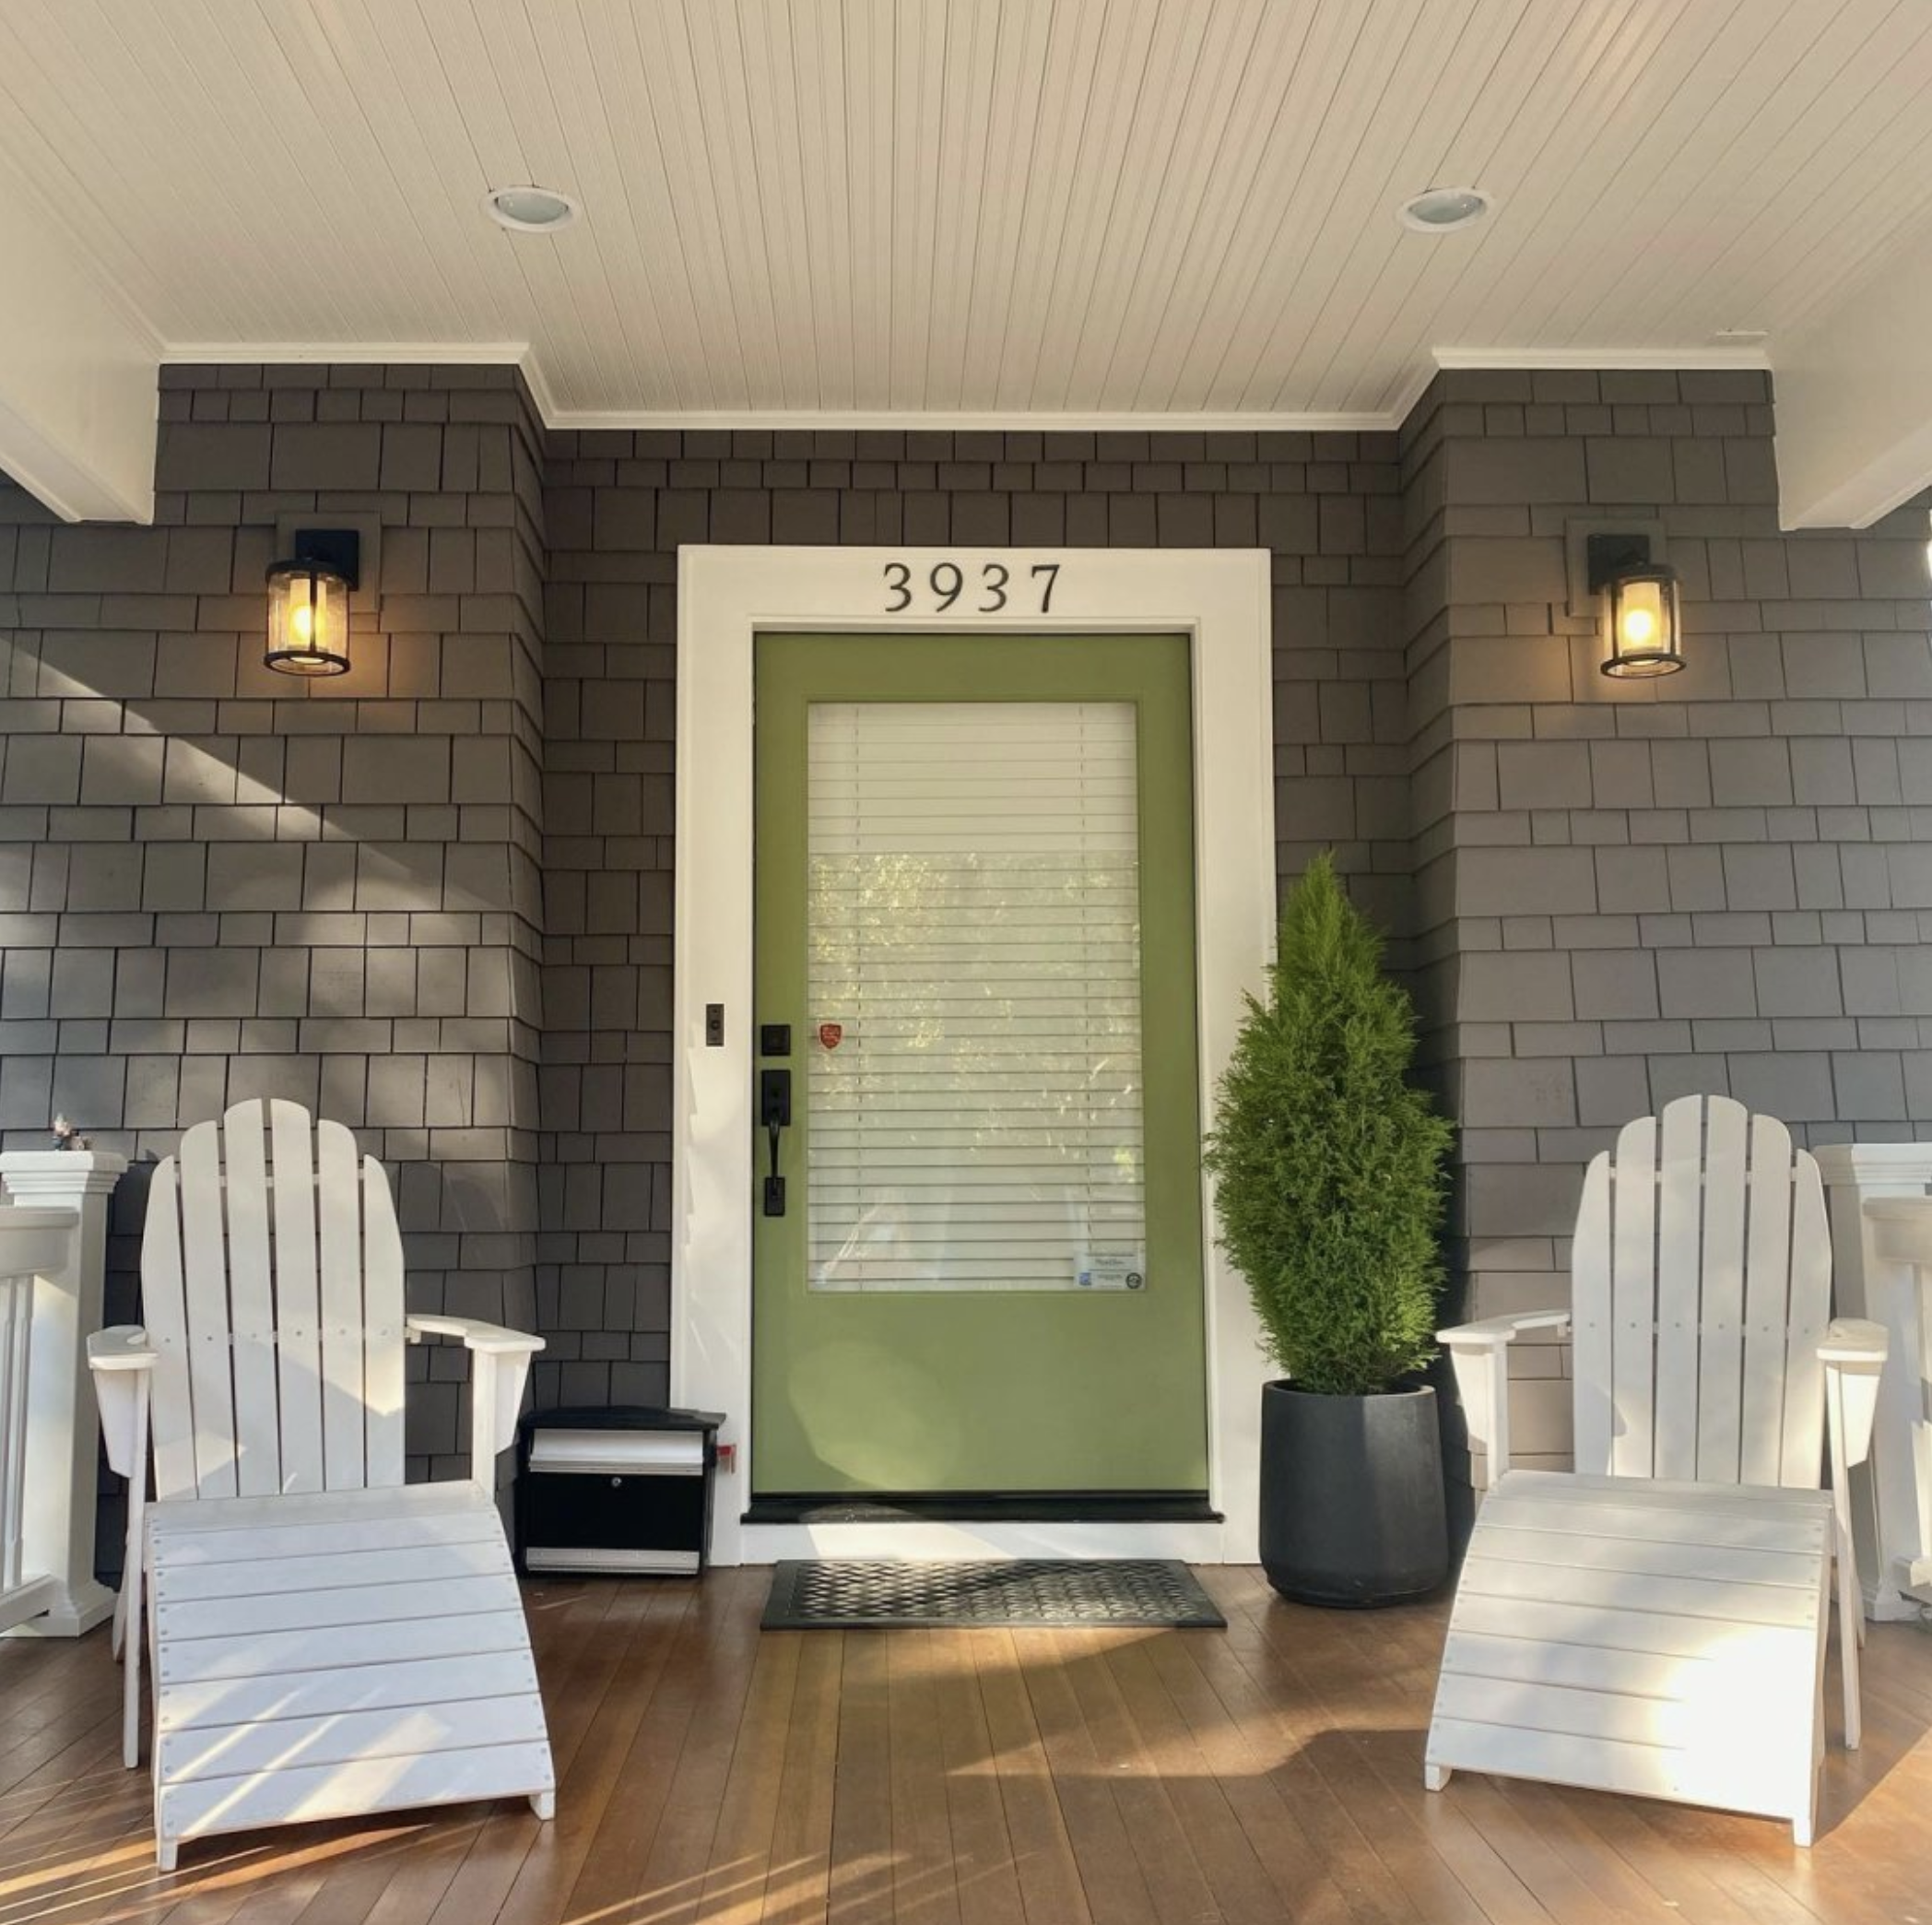 Image via @olivewoodcolor, feat. paint color: 'Folkstone' by Sherwin Williams